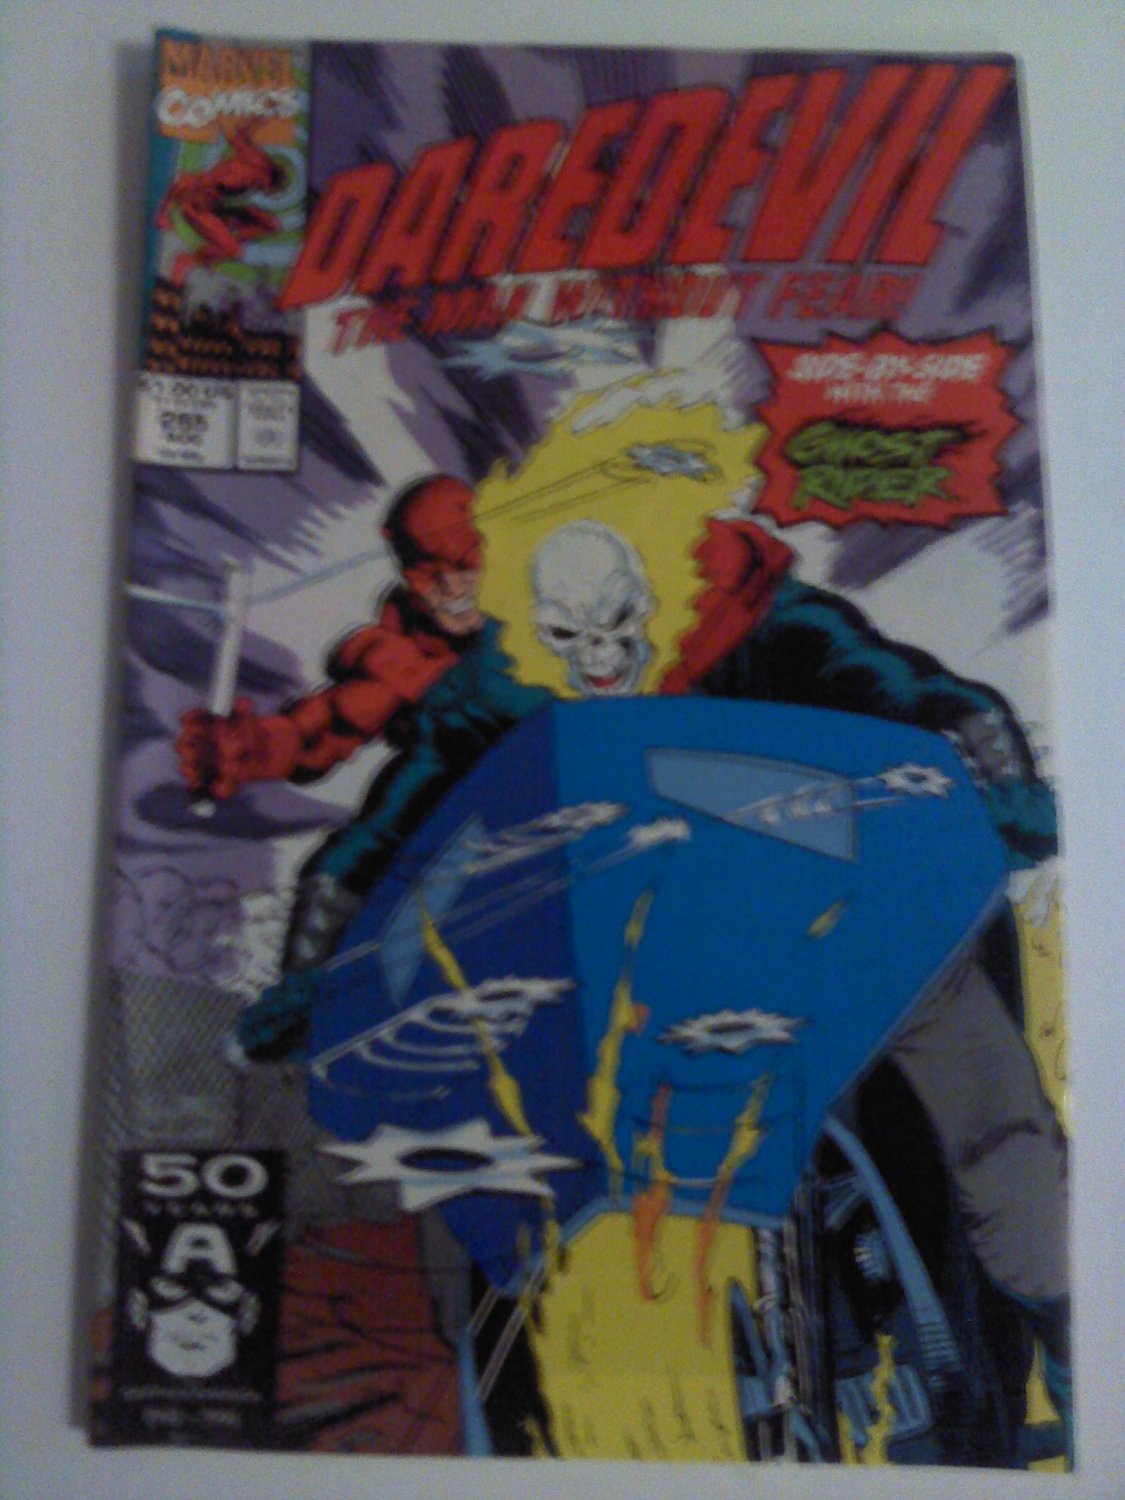 Daredevil #295 Ghostrider